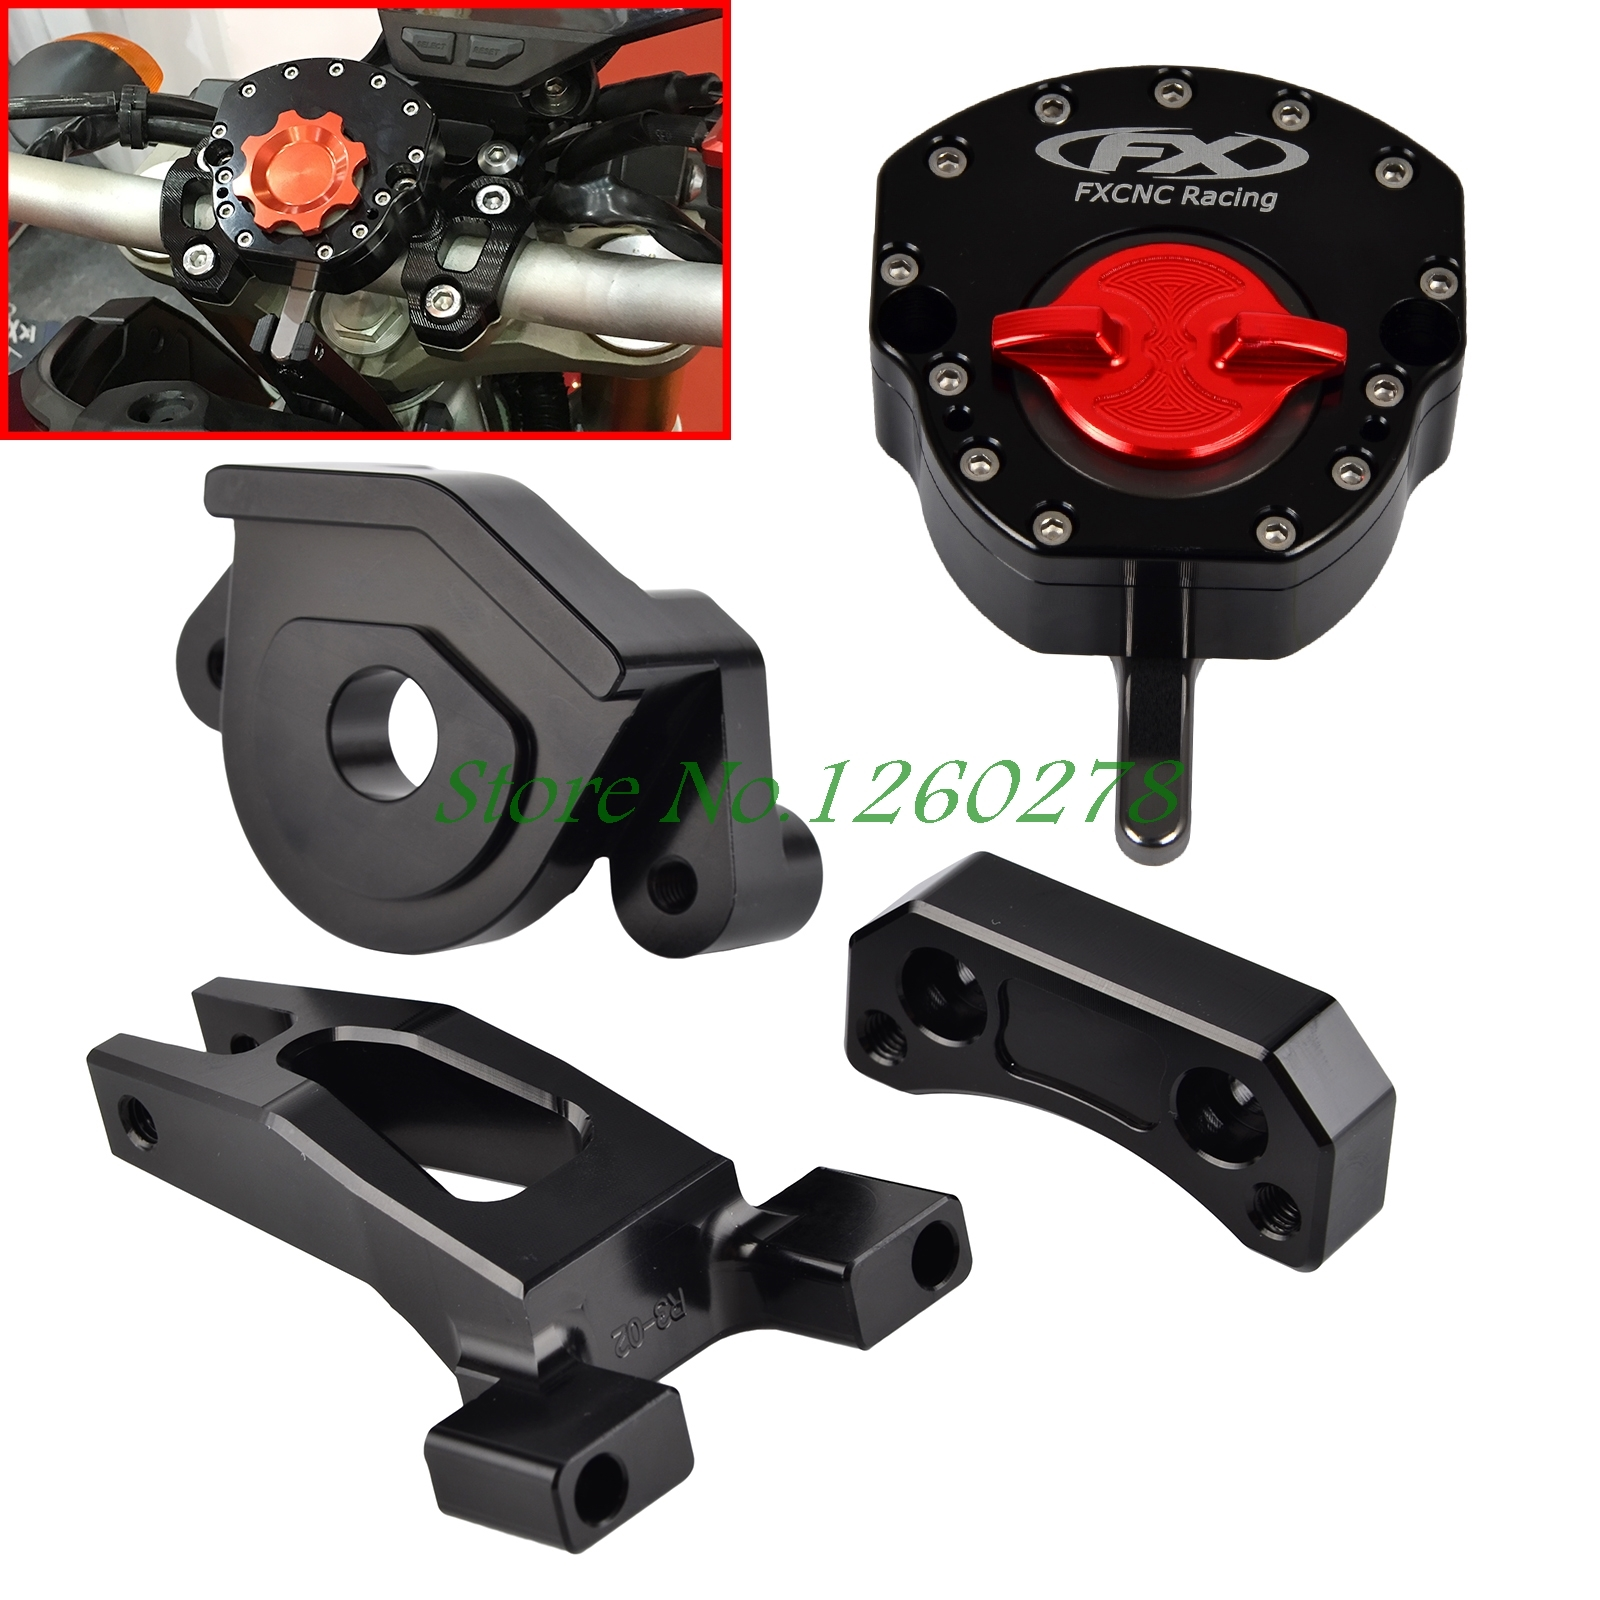 Motorcycle Steering Damper Stabilizer With Mounting Bracket Kit For Yamaha YZF R25 R3 2014 2015 2016 for ktm 200 duke 2013 2014 390 duke 2014 2015 2016 motorcycle accessories steering damper stabilizer with mounting bracket kit